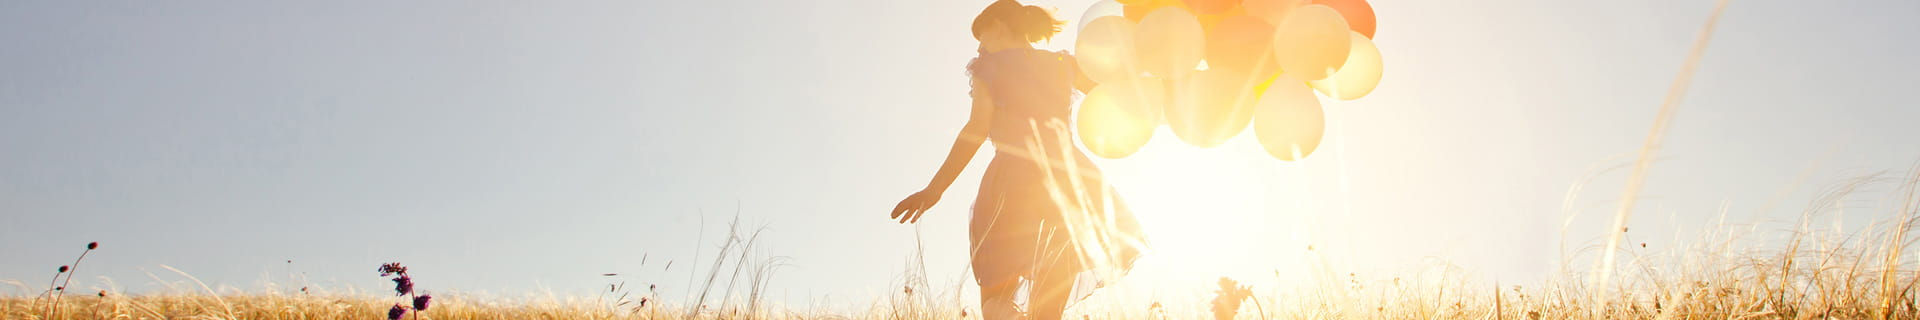 girl holding balloons in sunlight